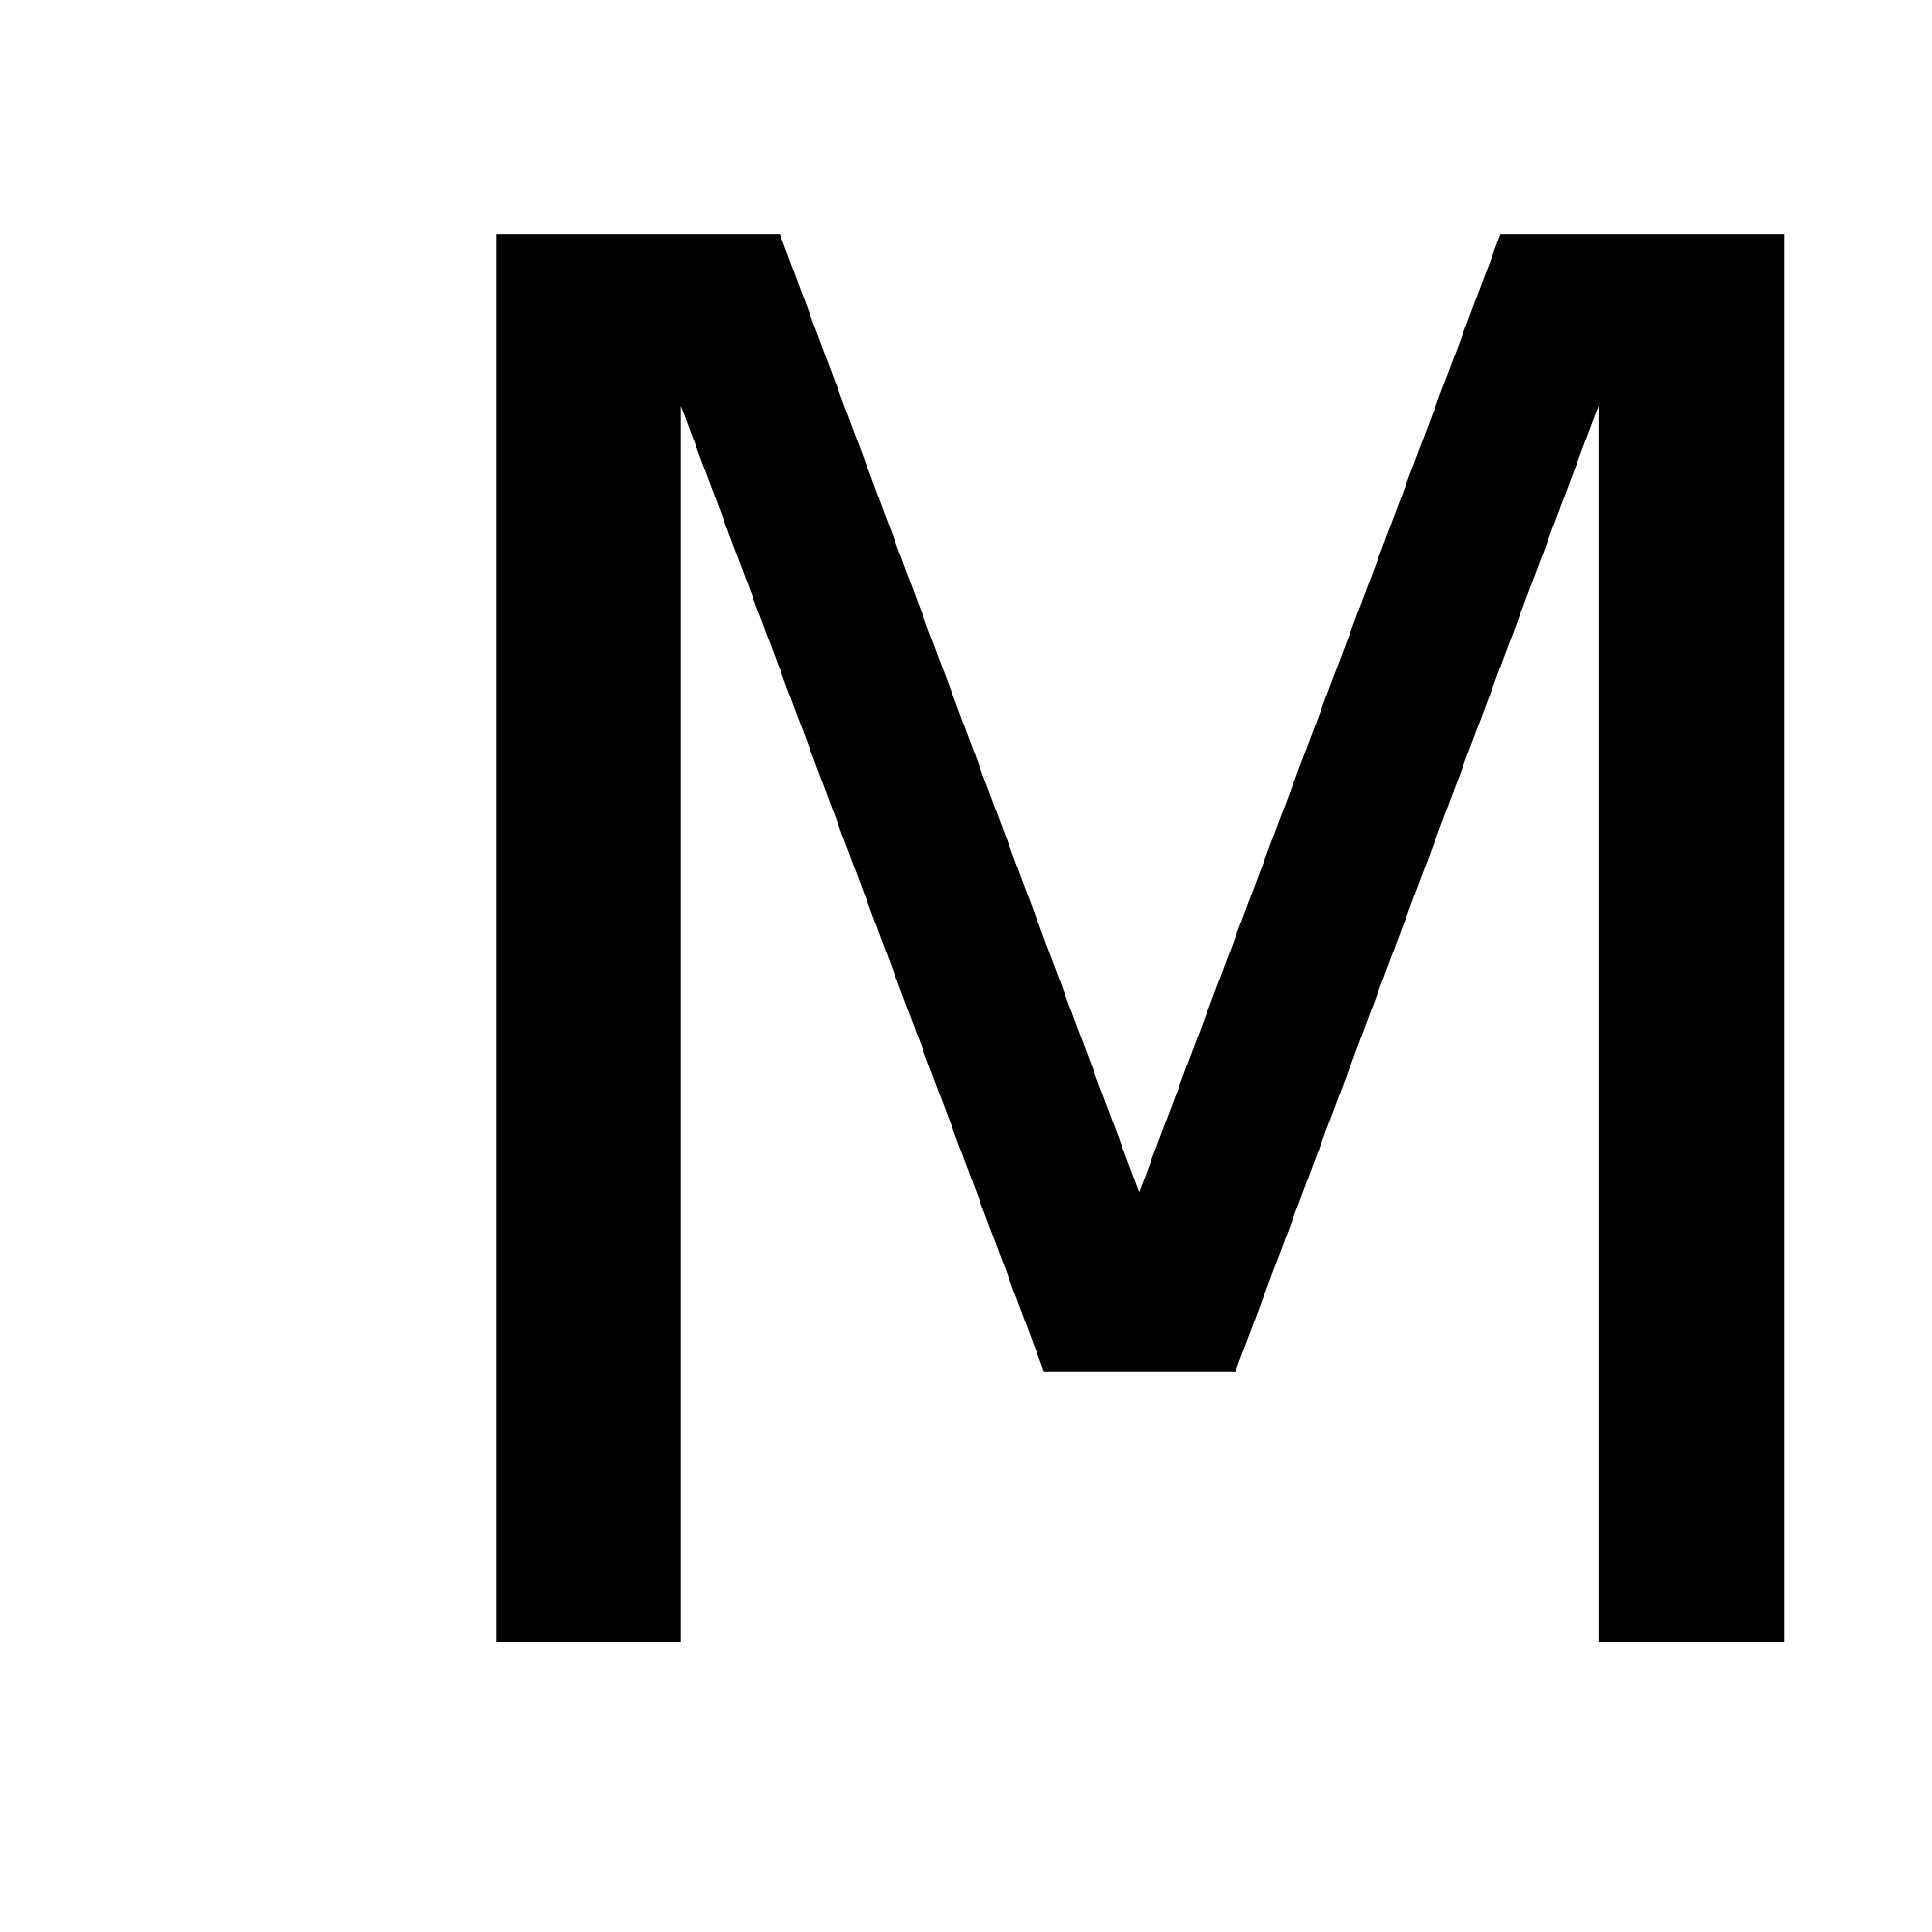 White letter m png